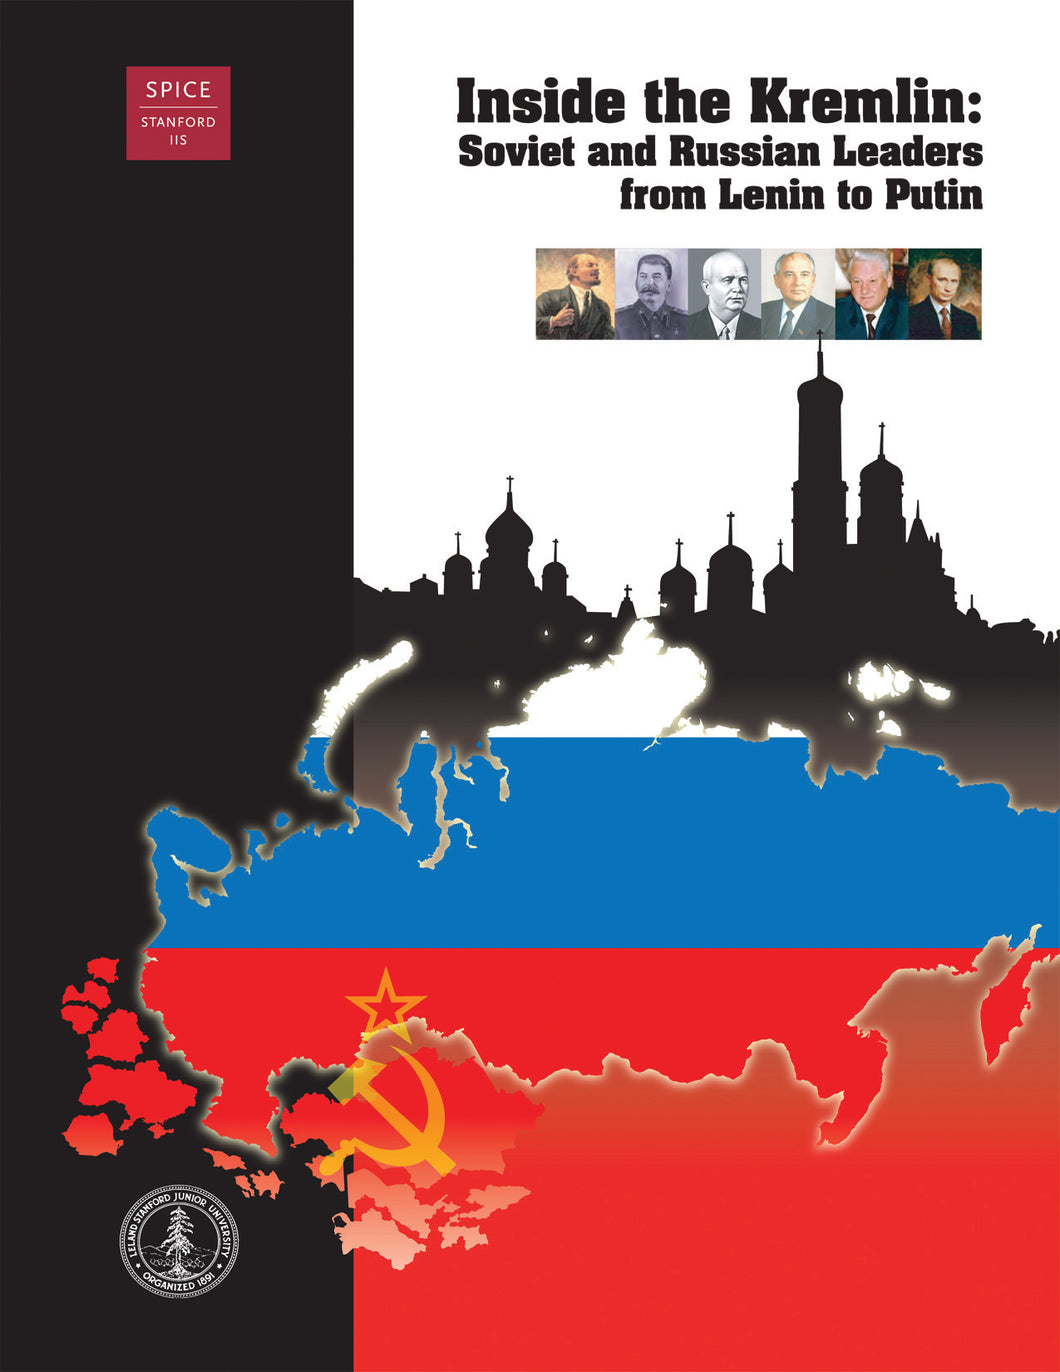 Inside the Kremlin: Soviet and Russian Leaders from Lenin to Putin